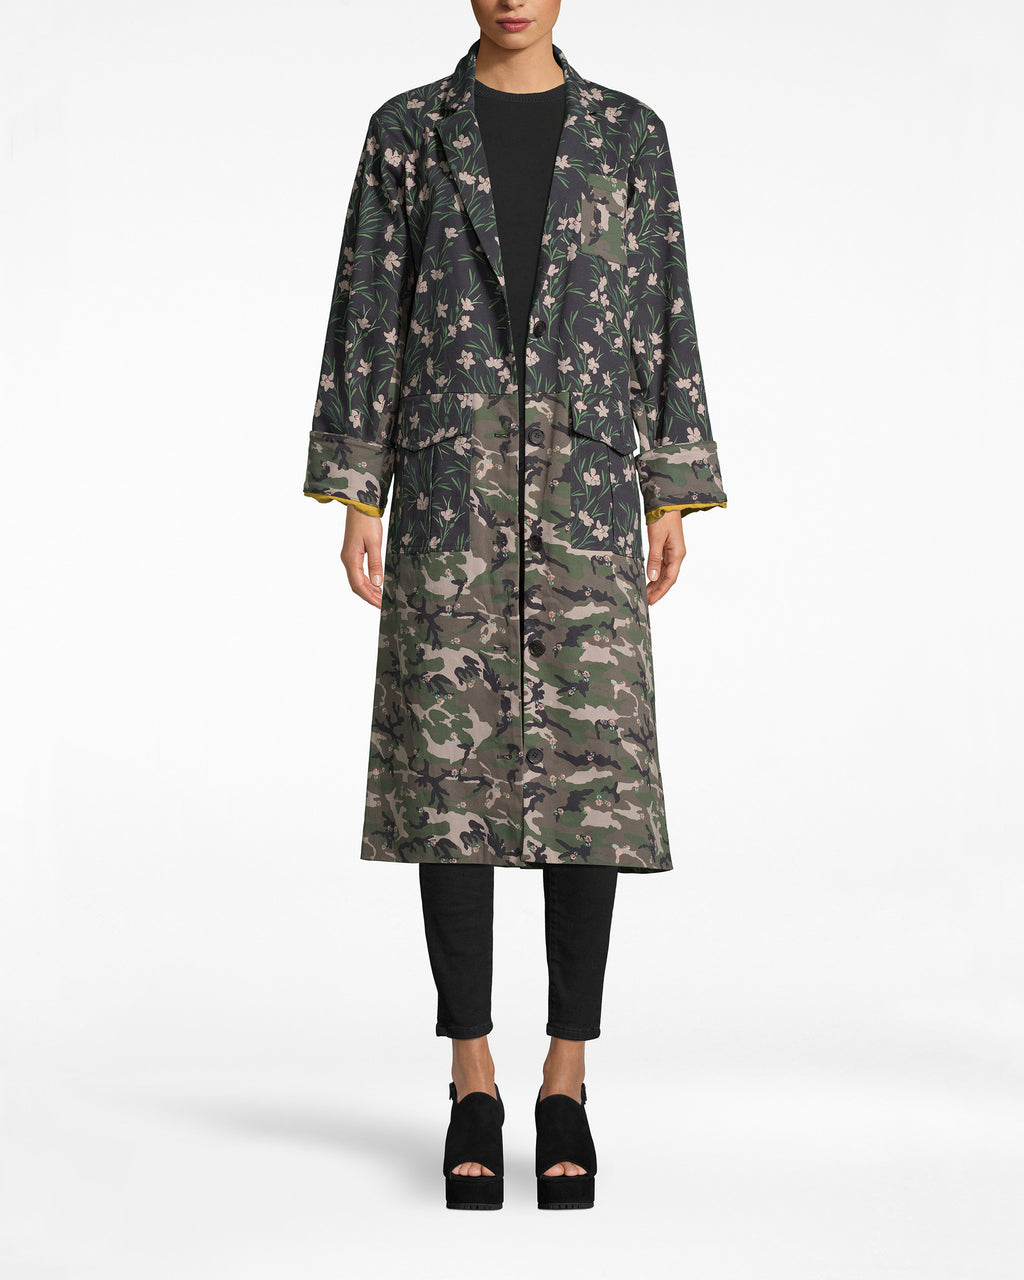 CH10062 - Tulip Camouflage Denim Oversized Jacket - outerwear - jackets - When your fav prints unite. This oversized jacket is the coolest combo of masculine and girly, camo and floral. It has front pockets and a deep v-neck.